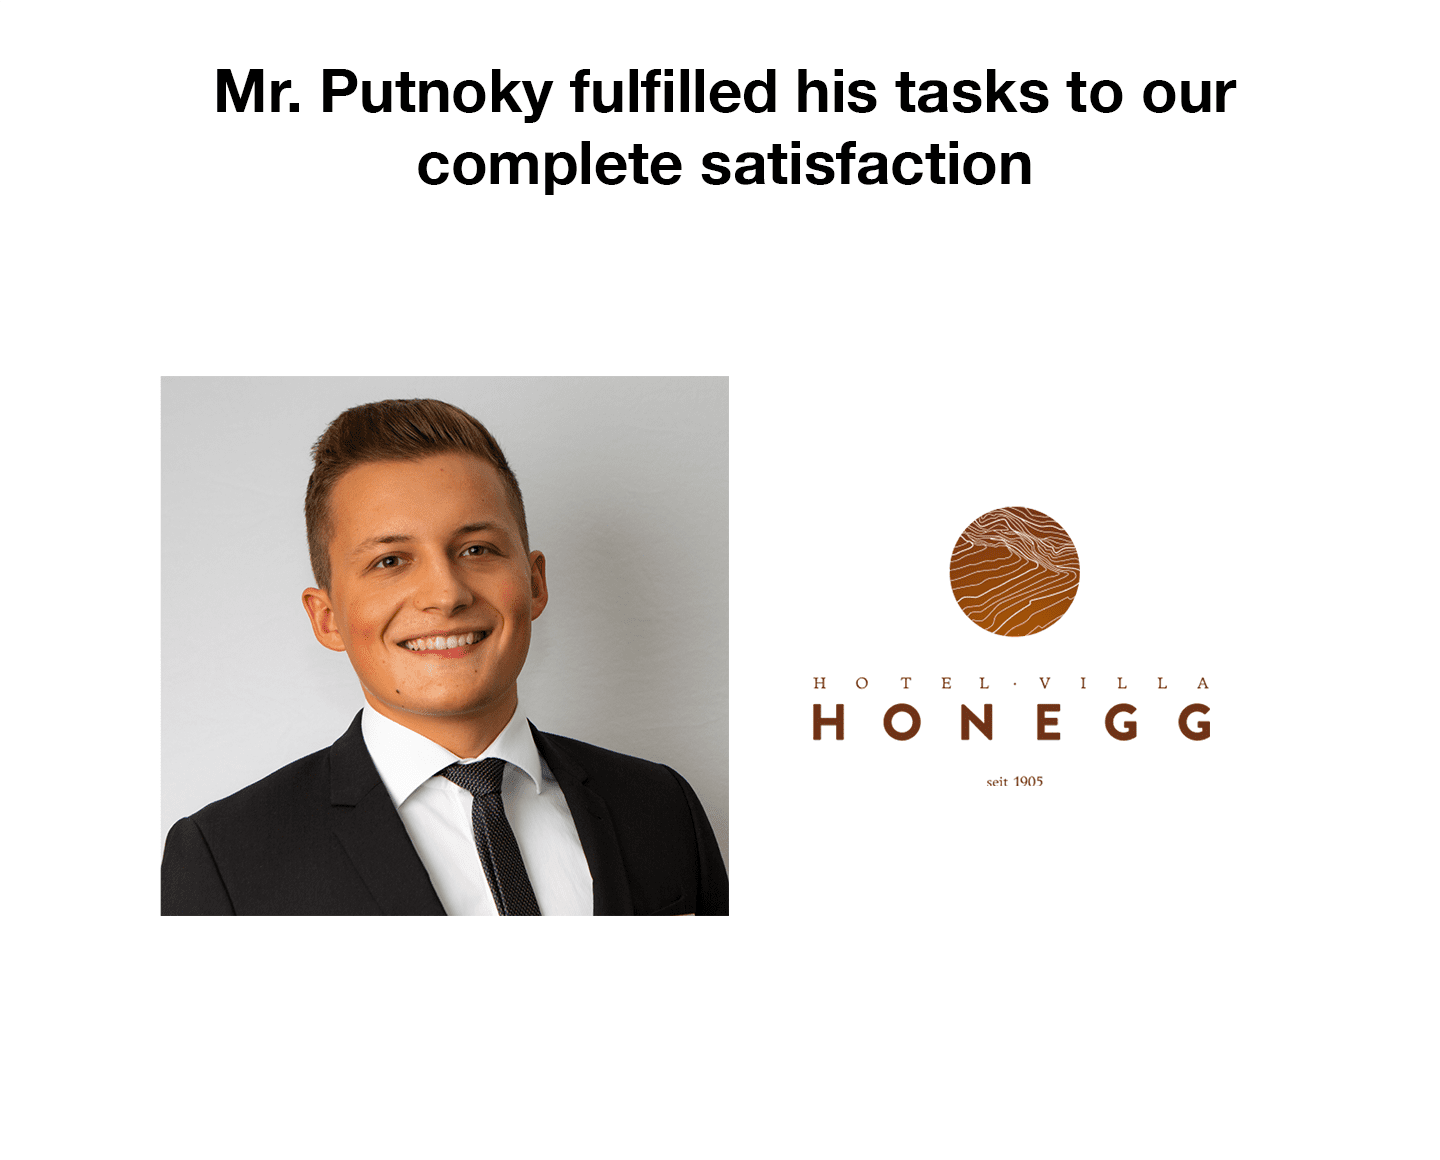 Mr. Putnoky fulfilled his tasks to our complete satisfaction